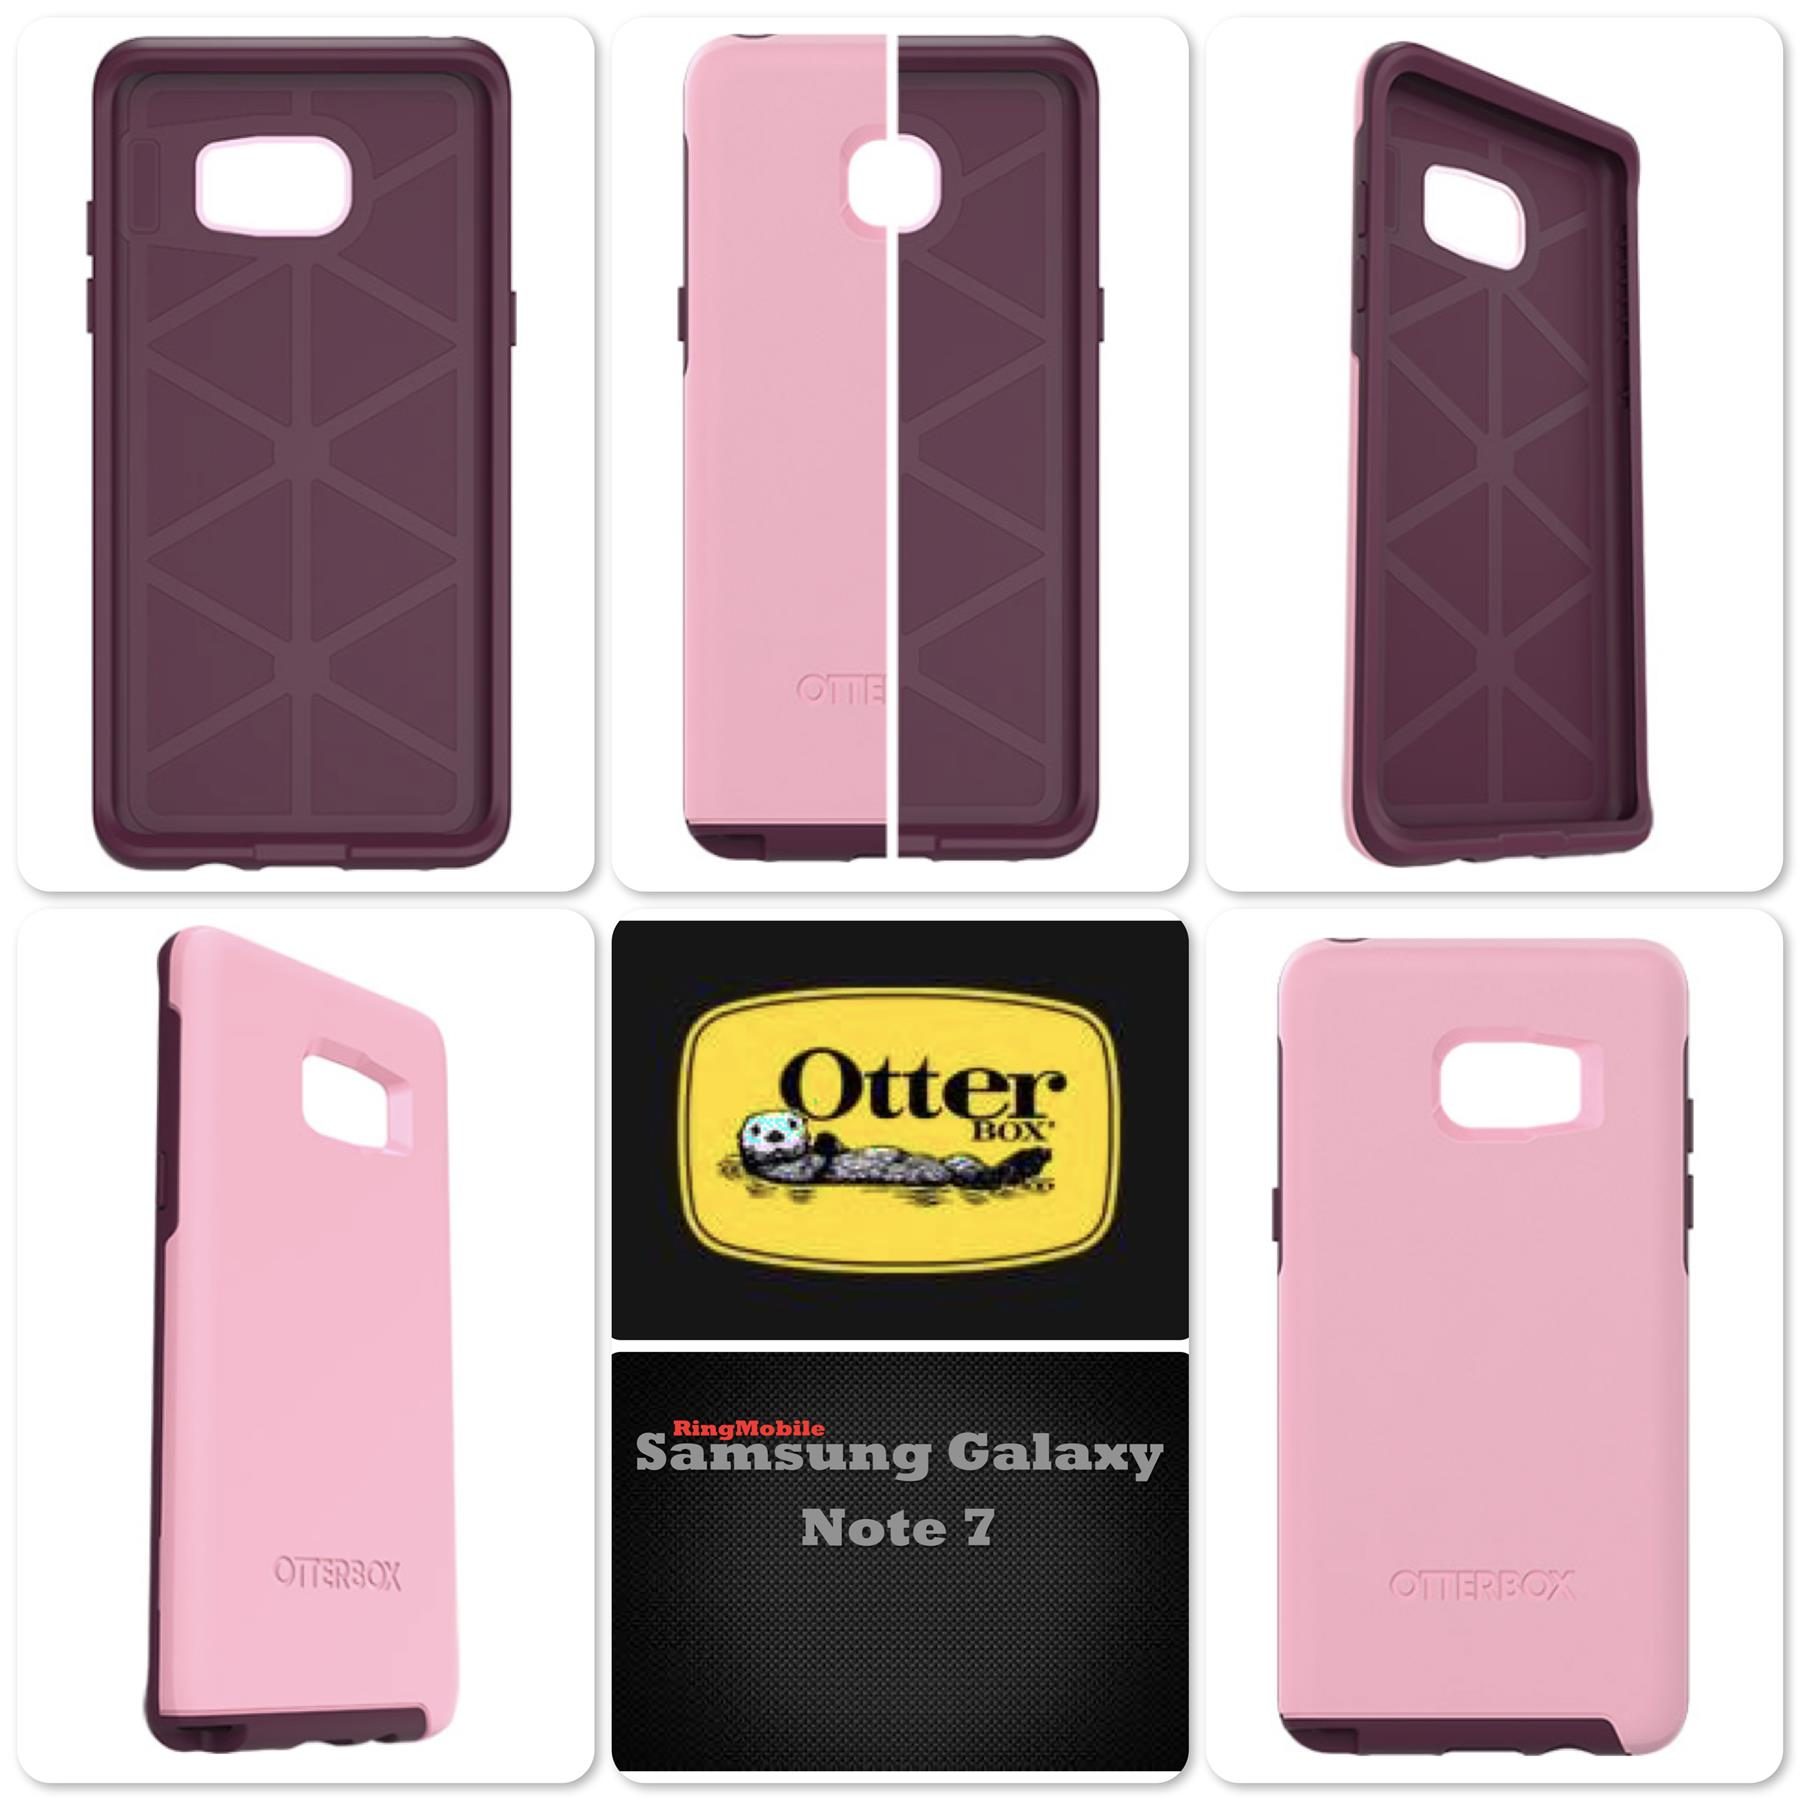 Samsung Galaxy Note 7 Otterbox Symmetry Series Rose